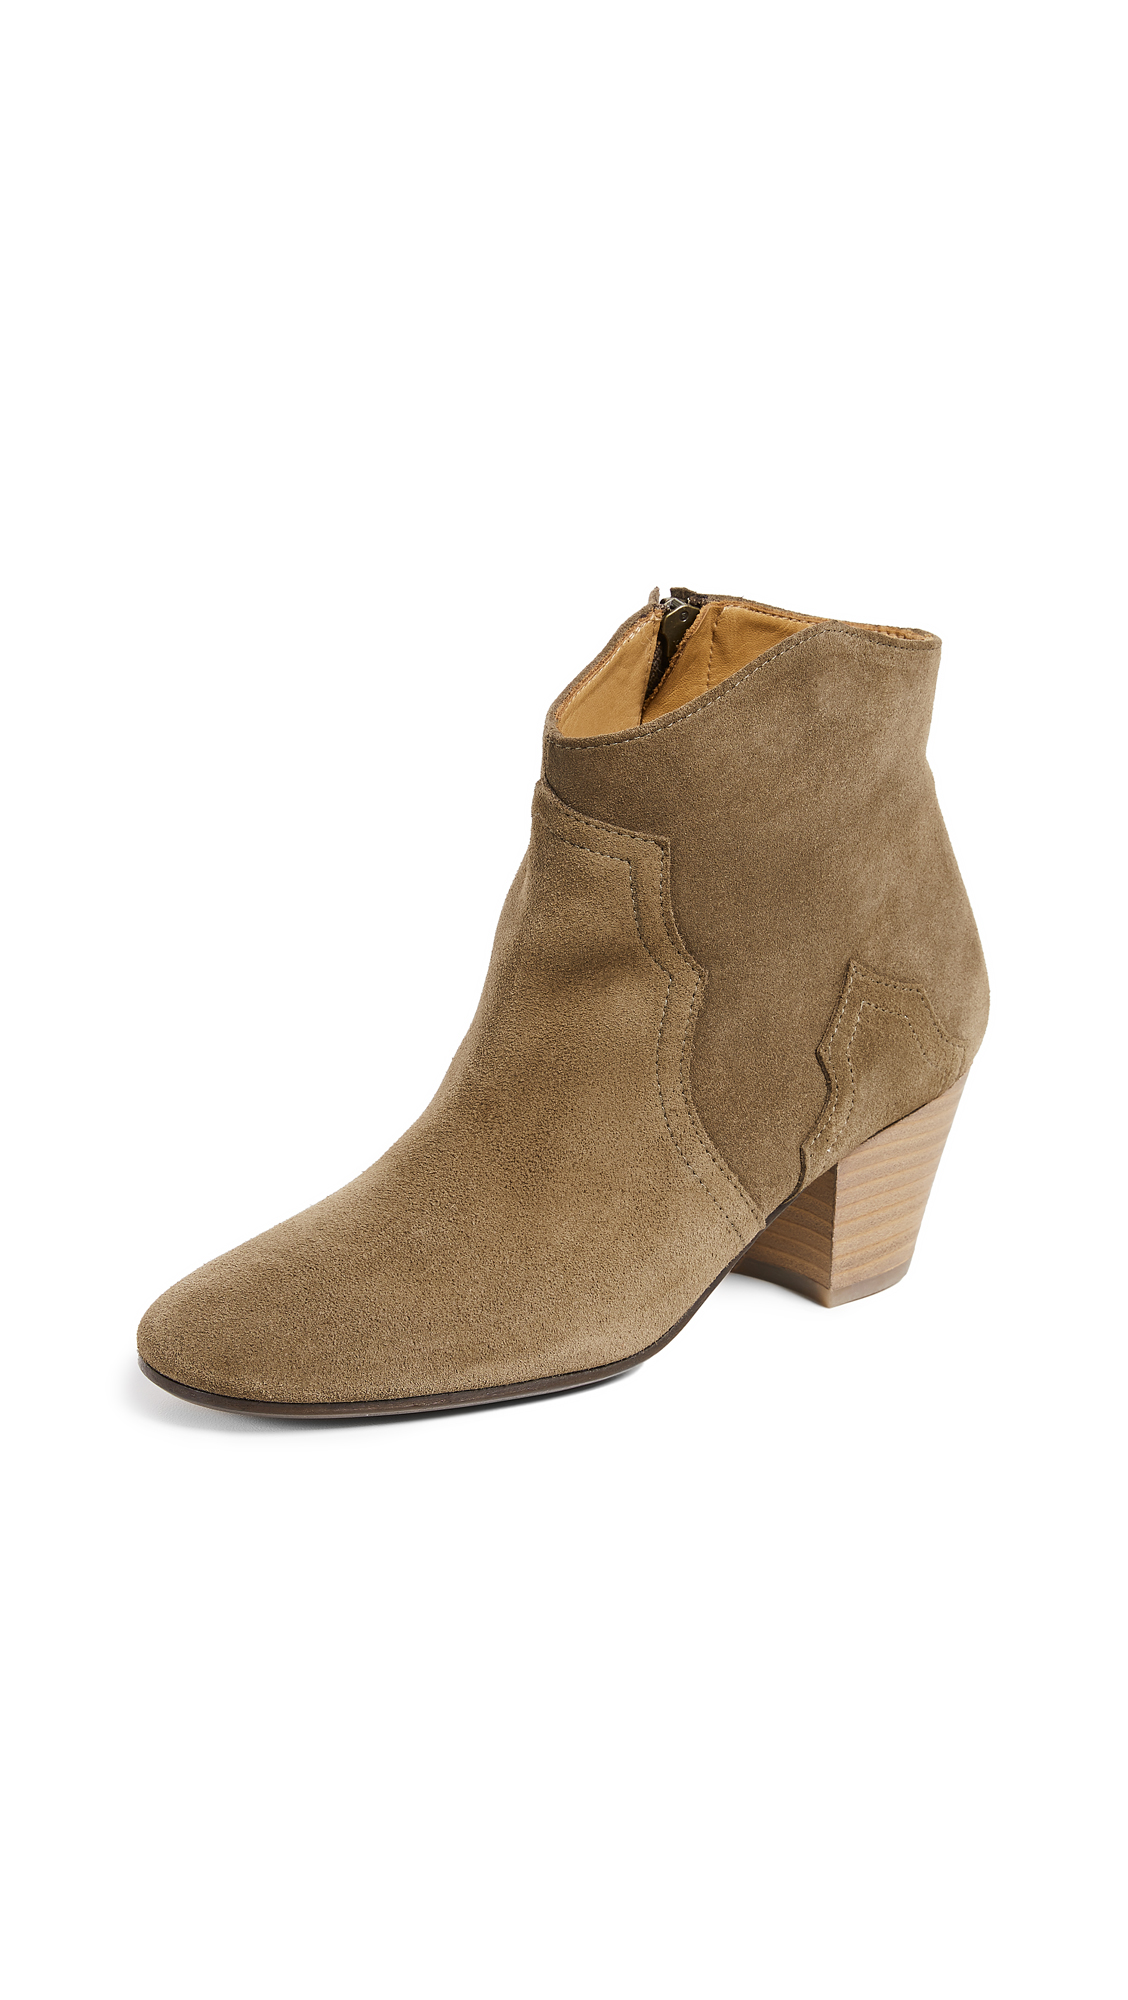 Isabel Marant Dicker Booties - Brown